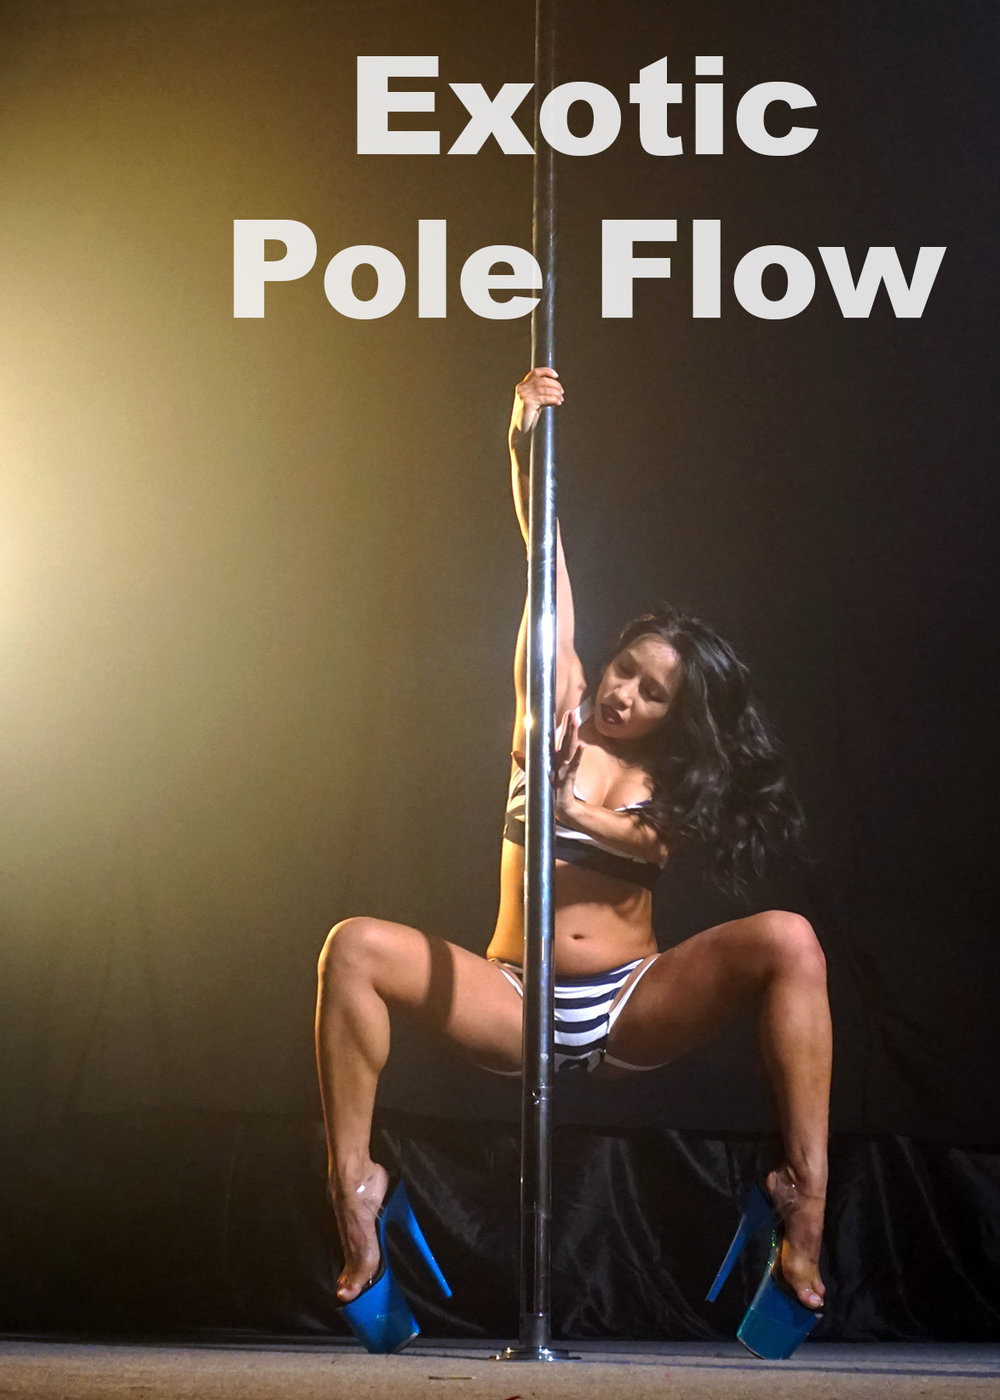 Exotic Pole Flow.jpg